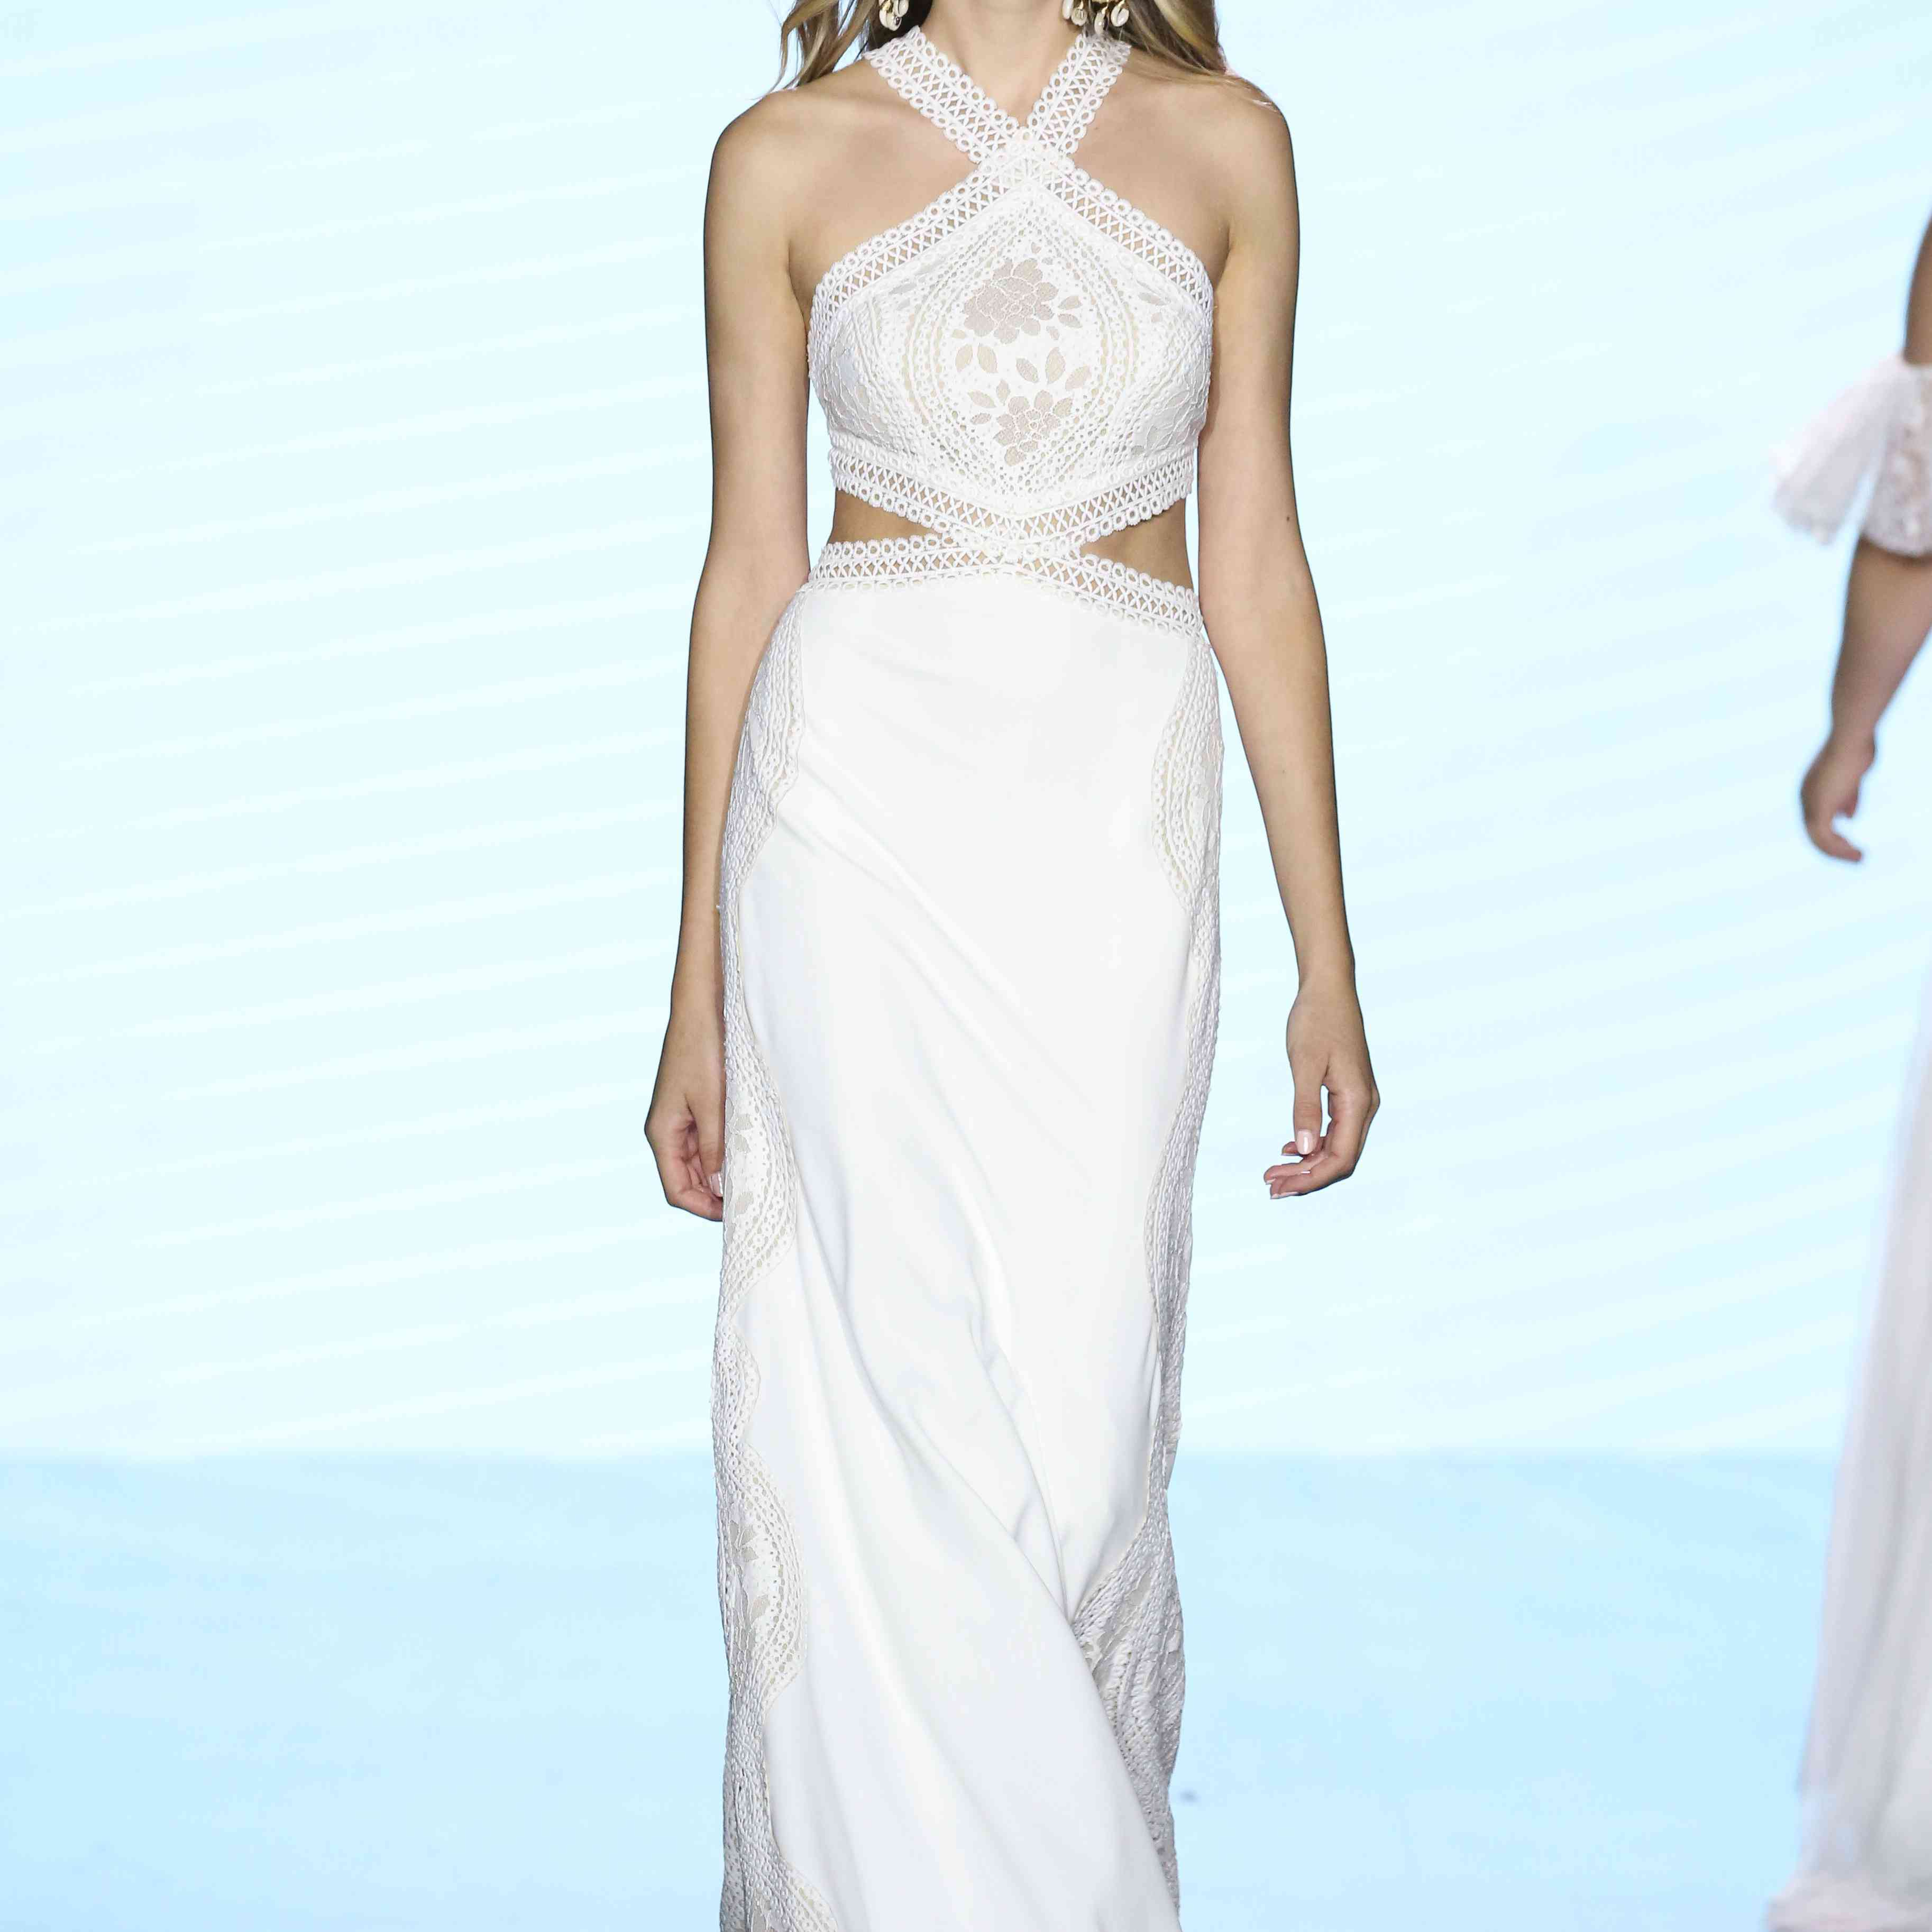 Model in halter wedding dress with side cutouts and lace panels